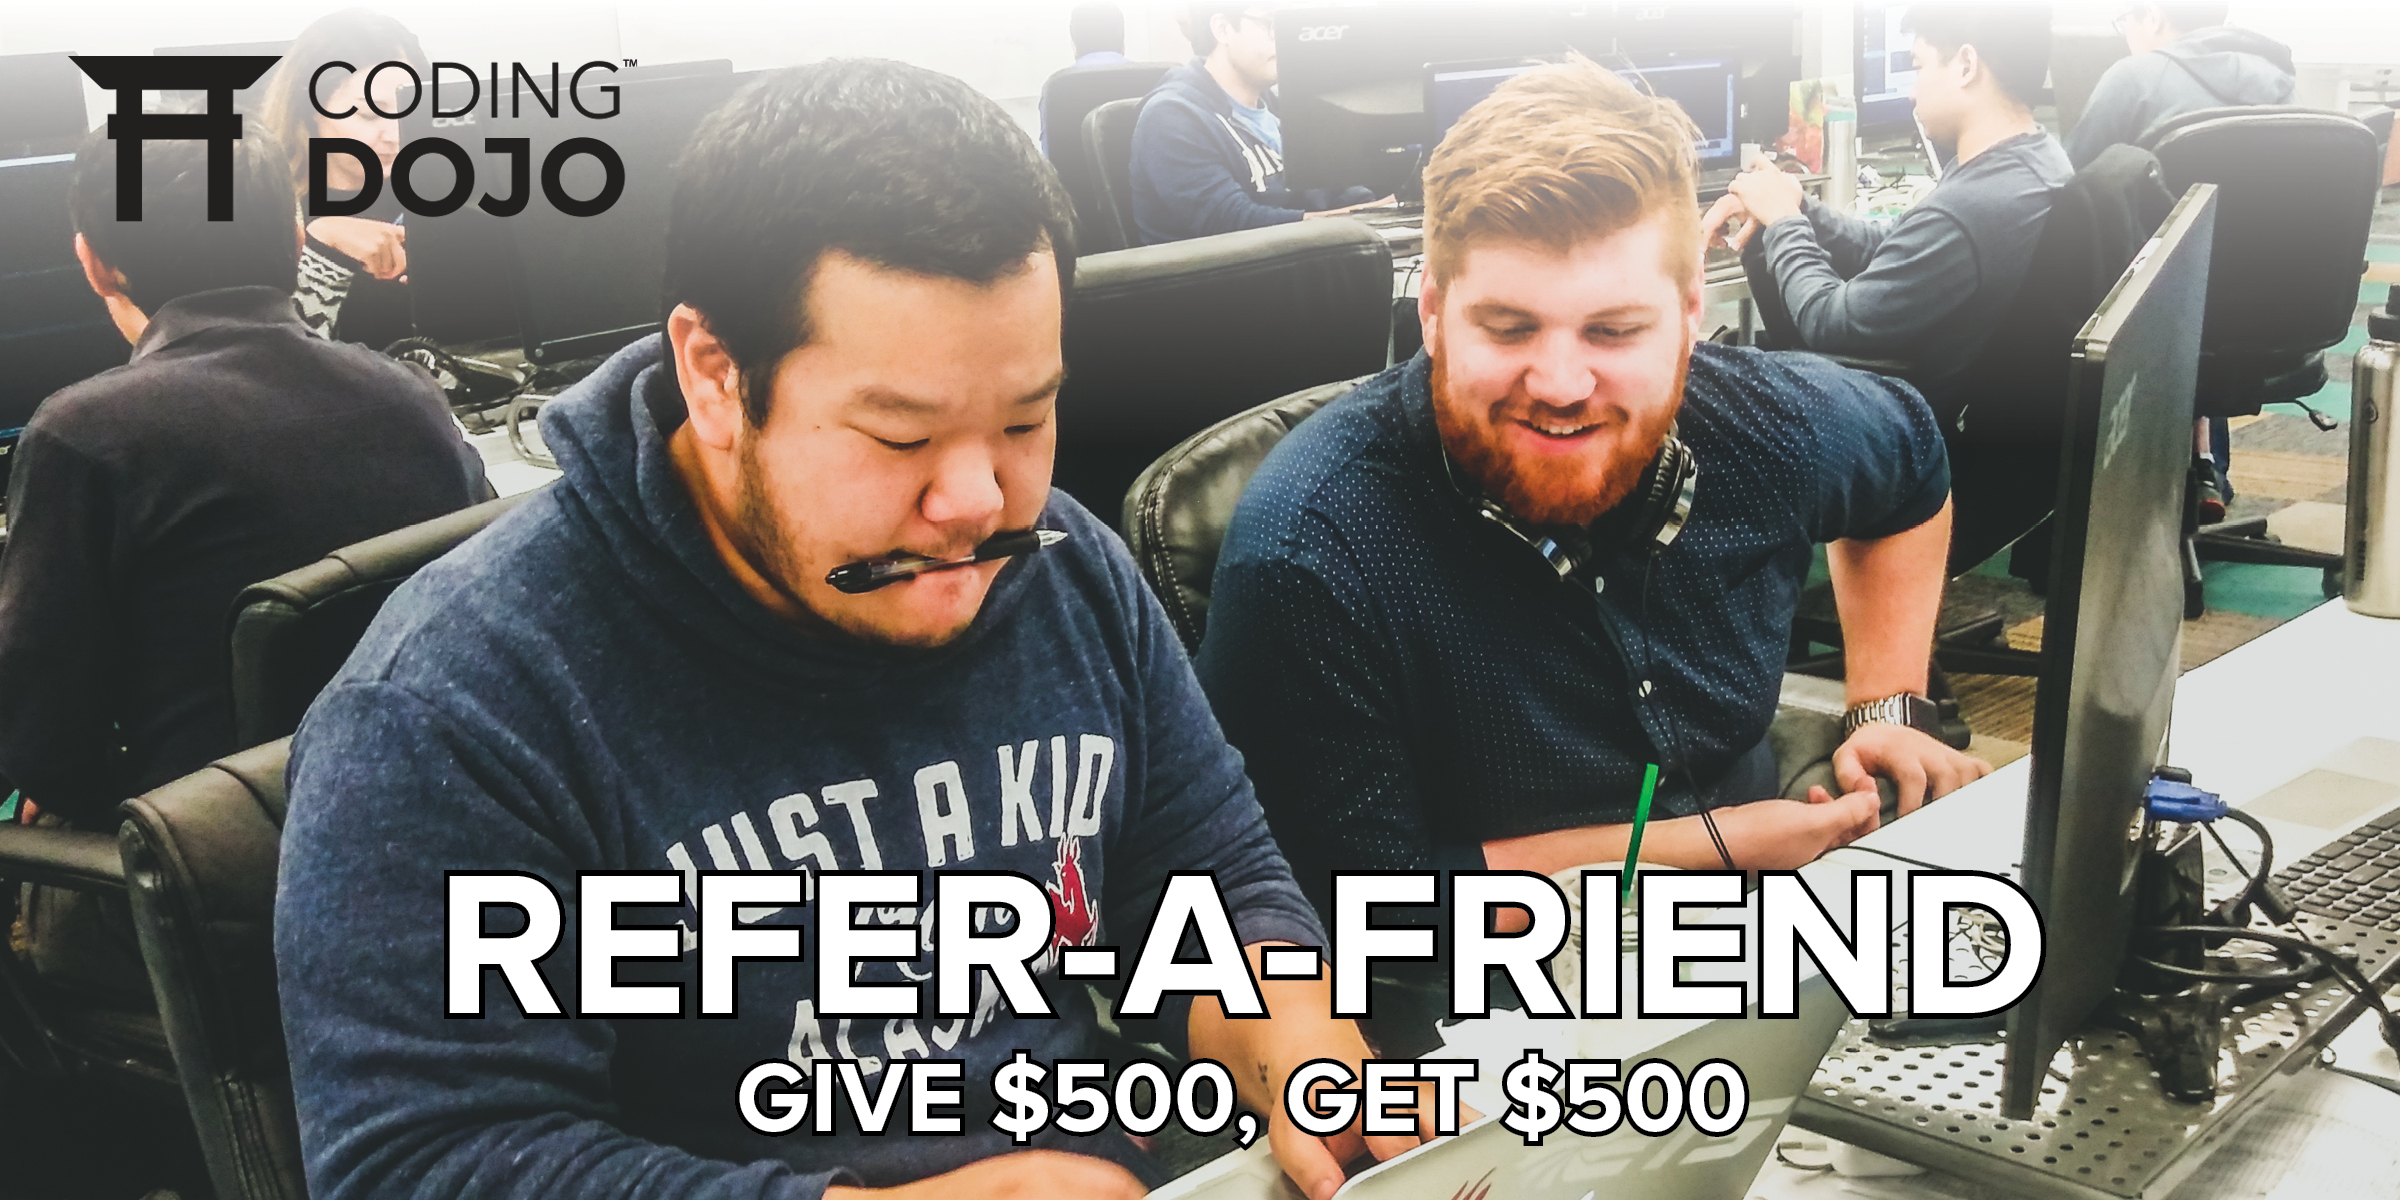 Coding Dojos referral program is back in a big way: give $500, get $500.